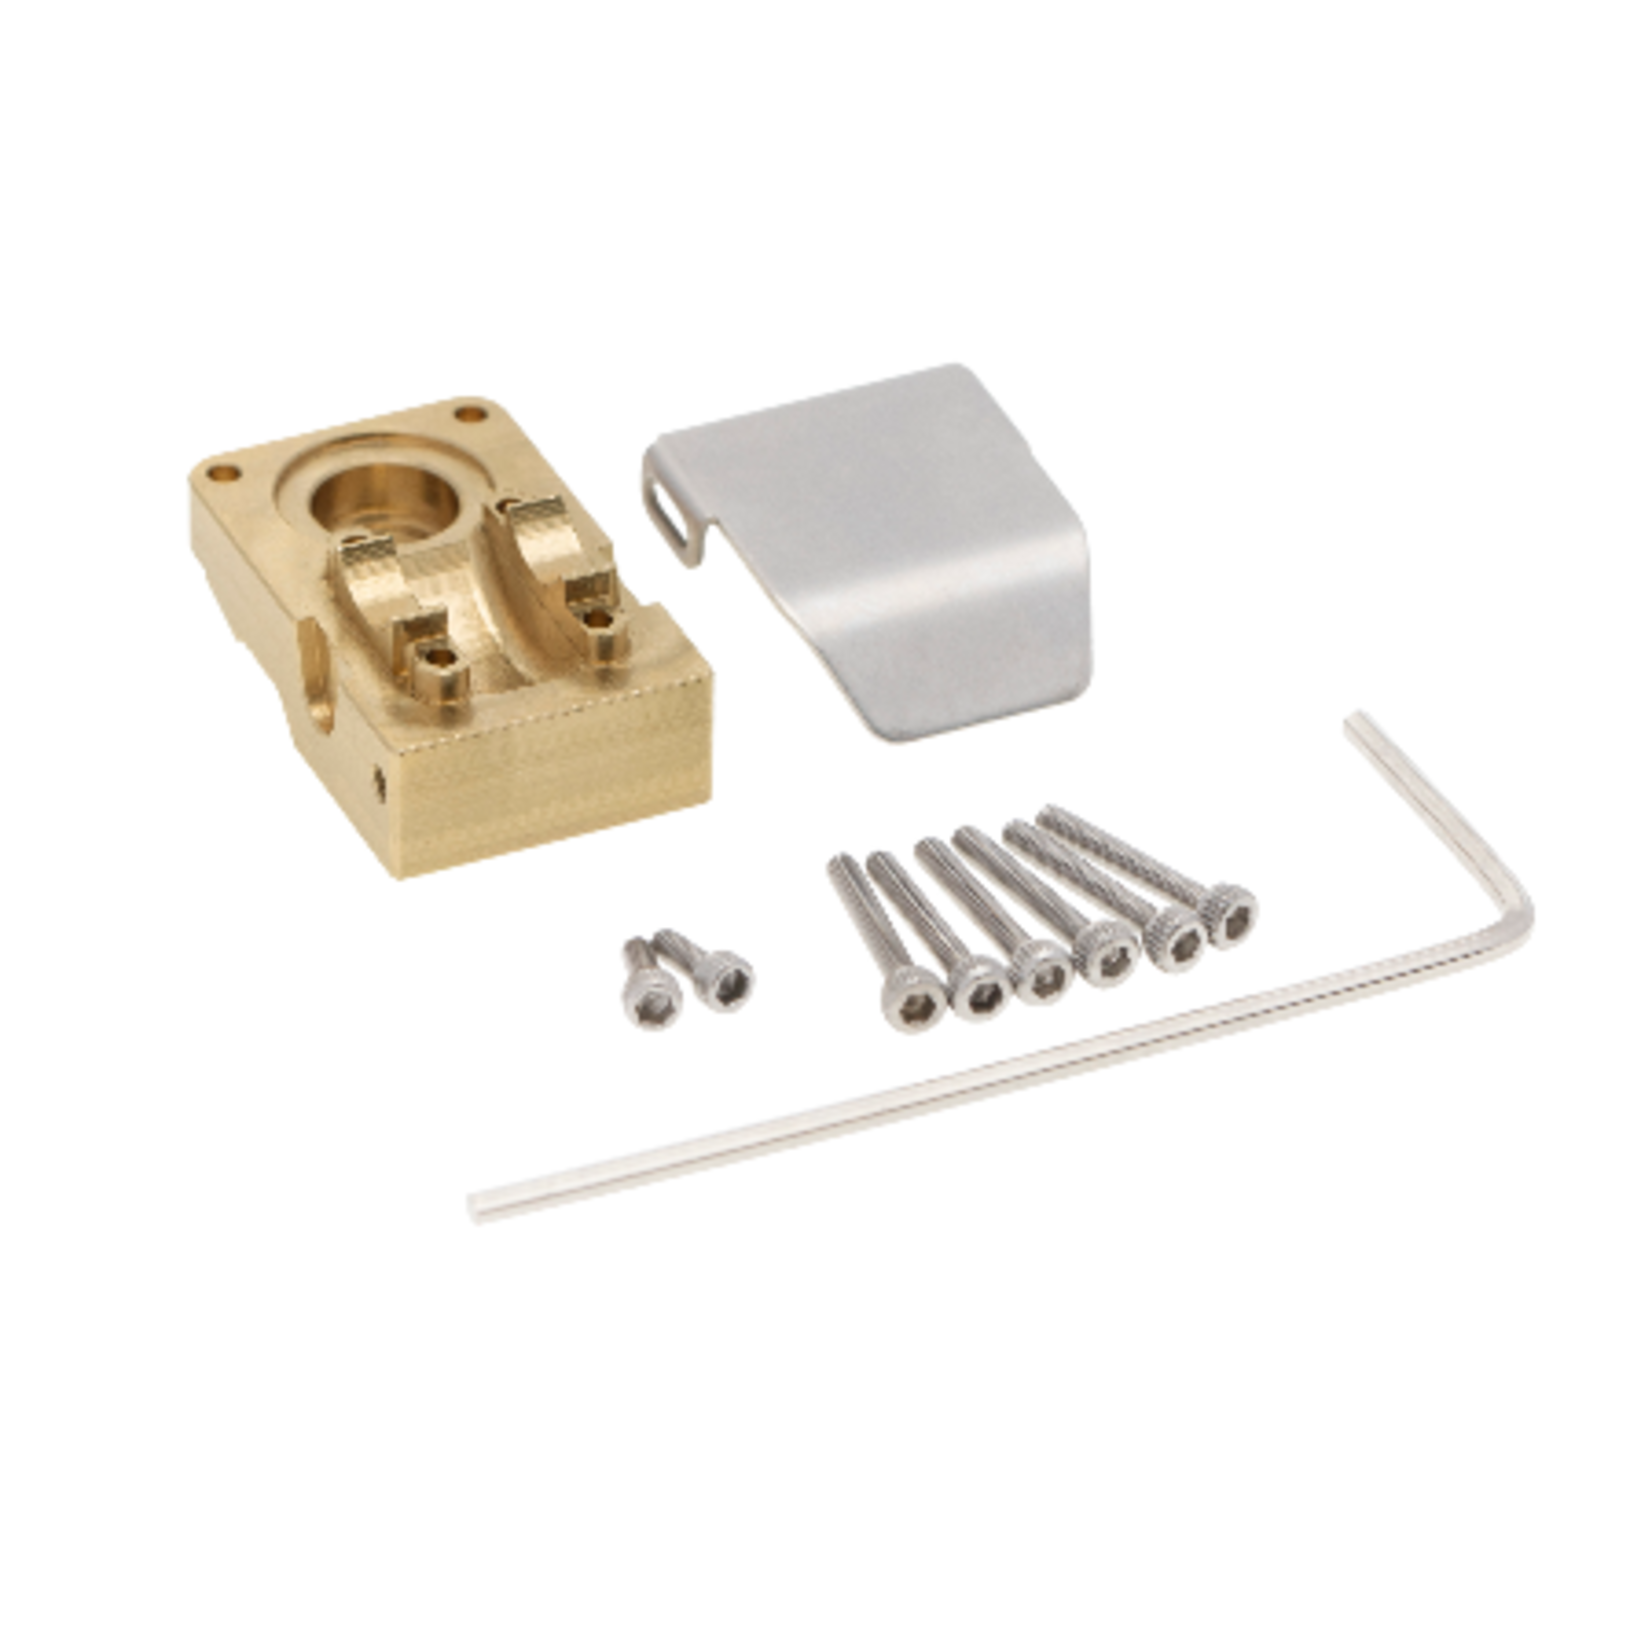 Hobby Details DTSCX24-3 Hobby Details Axial SCX24 Brass Counterweight Cup and Armor Guard Plate 1 set